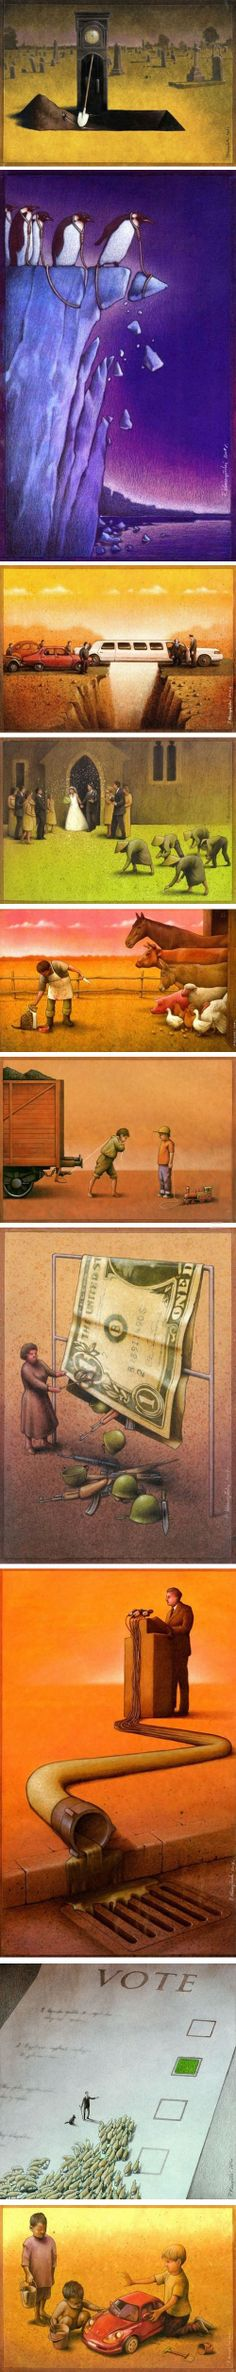 Clever Political Illustrations by Paul Kuczynski